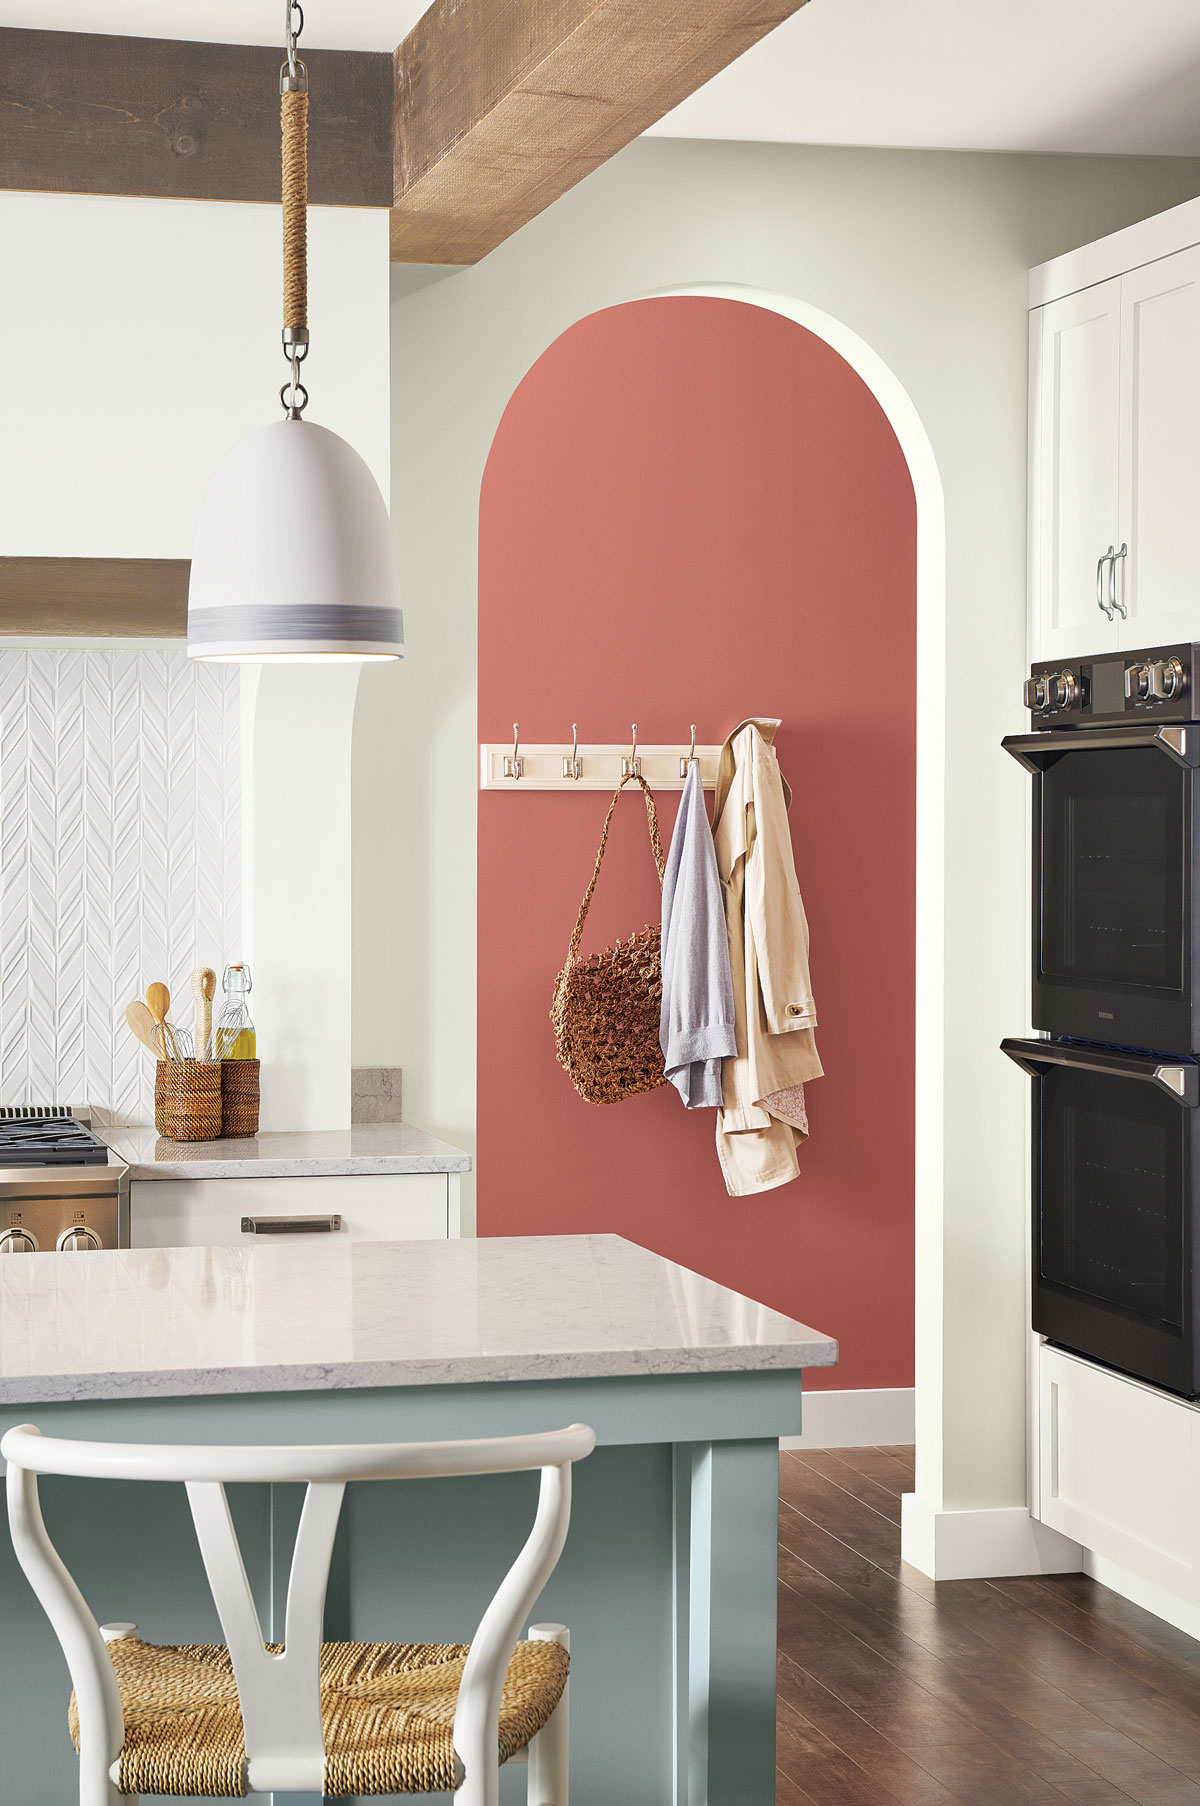 Part of the kitchen, part of countertop with white marble top, hallway with peach wall and wall hanger seen through arc opening